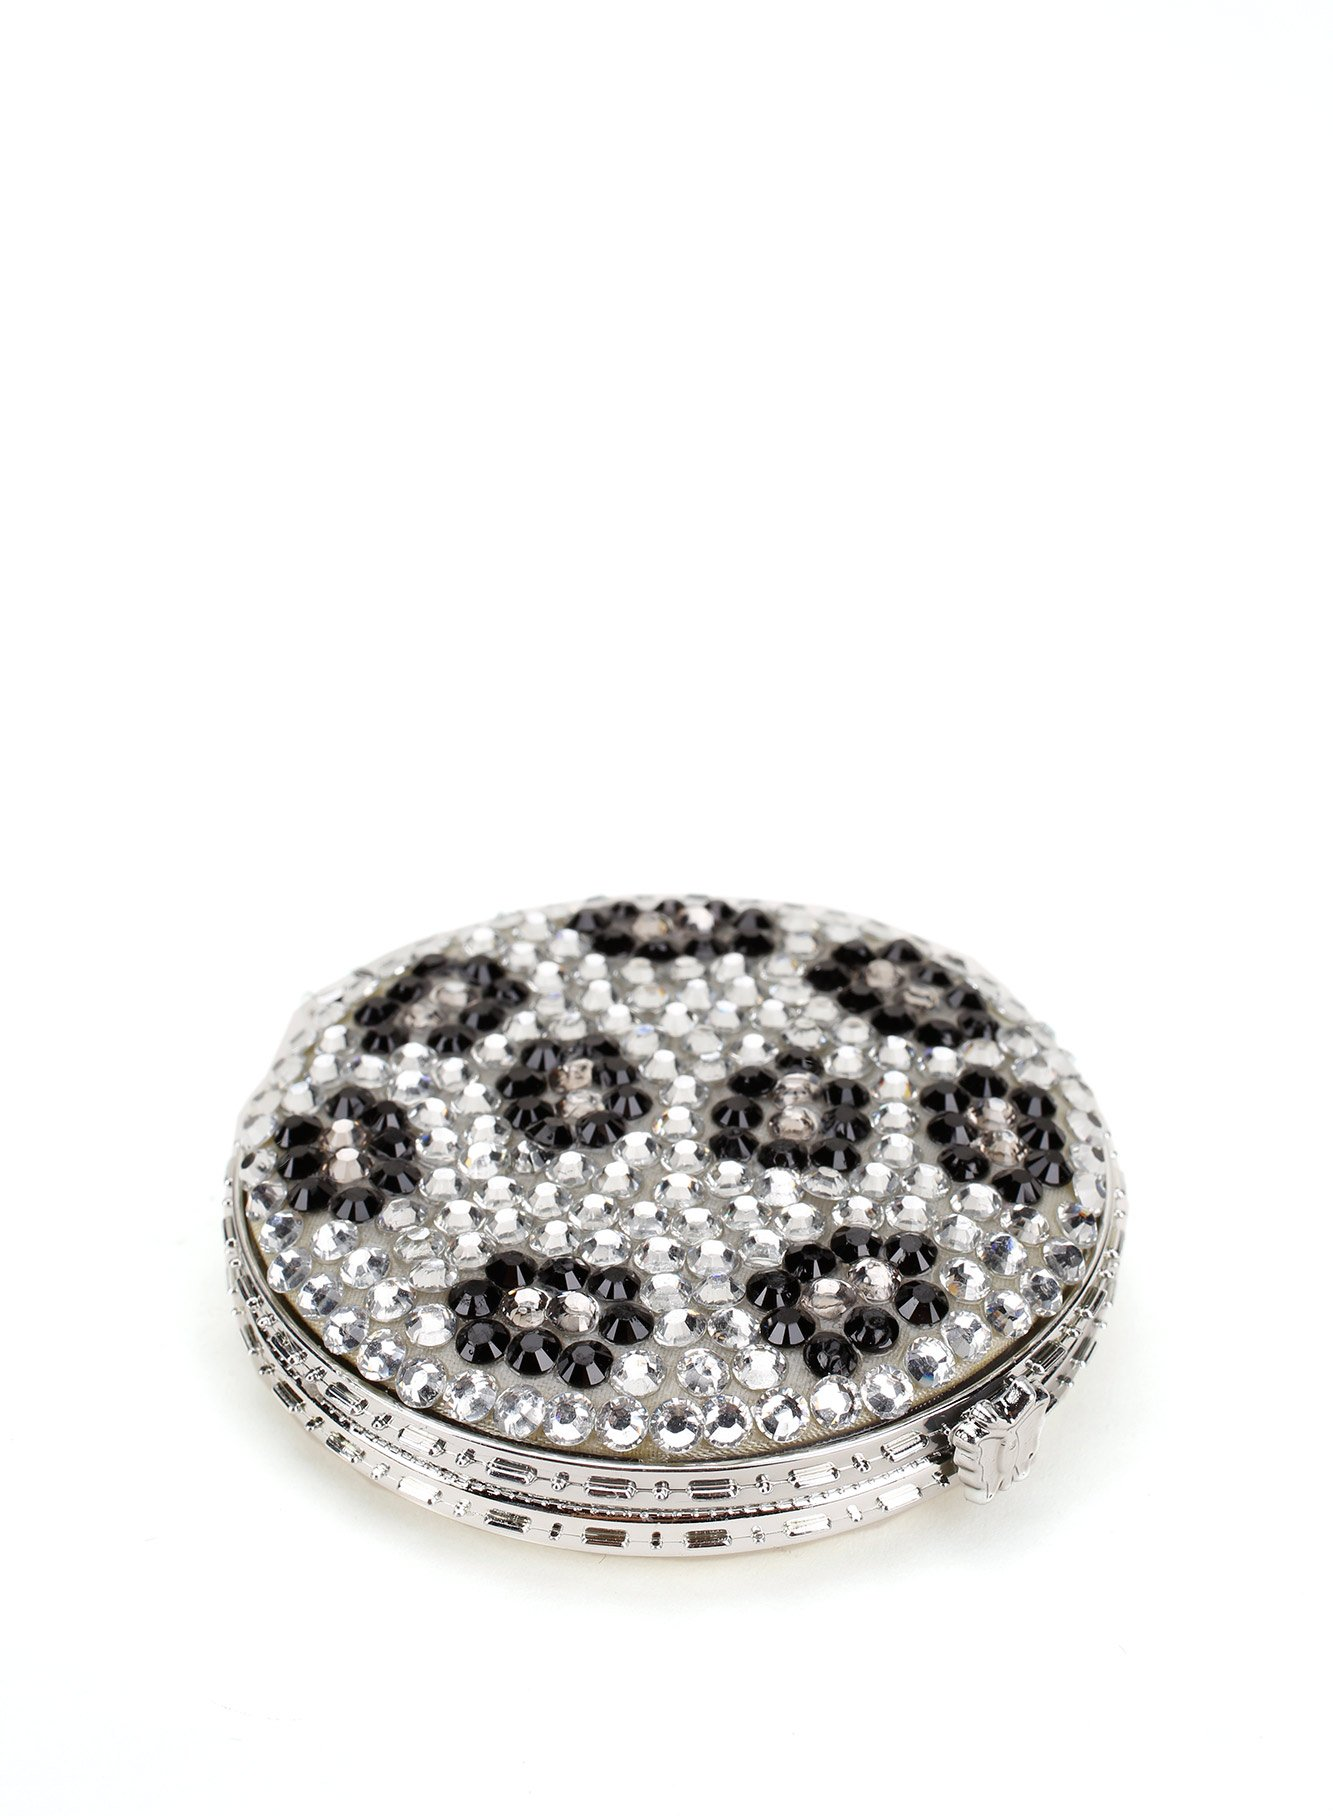 Leopard Design Round Compact Mirror Encrusted with Rhinestones